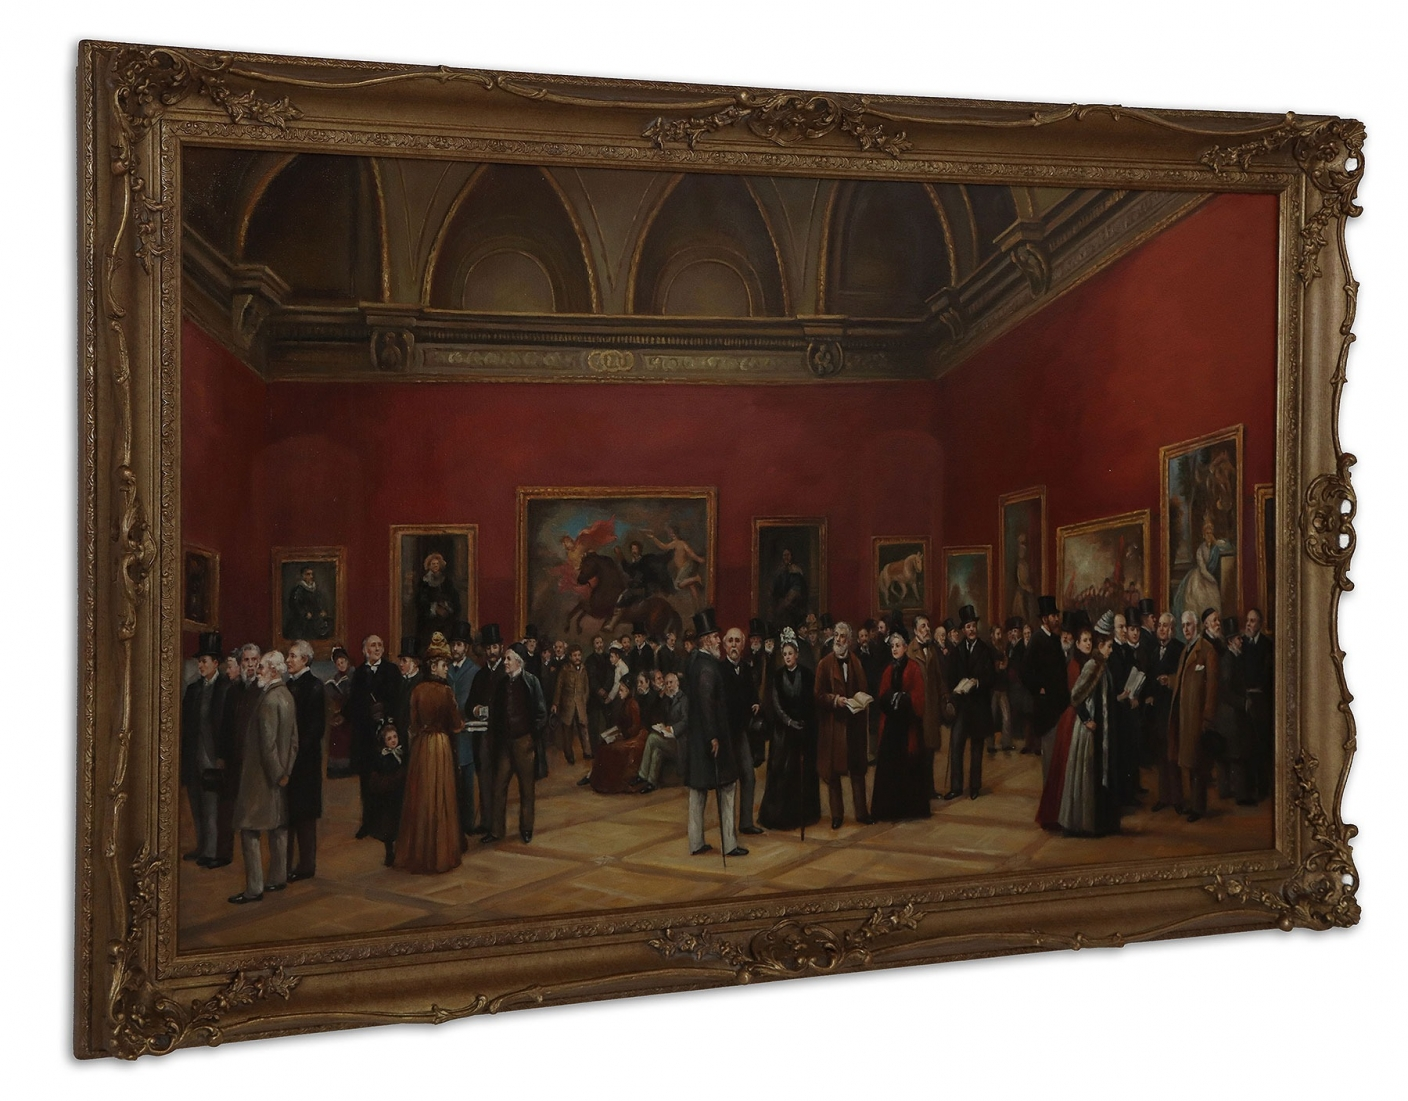 Oil Painting after 'Private View of The Old Masters Exhibition' of Henry Jamyn Brooks